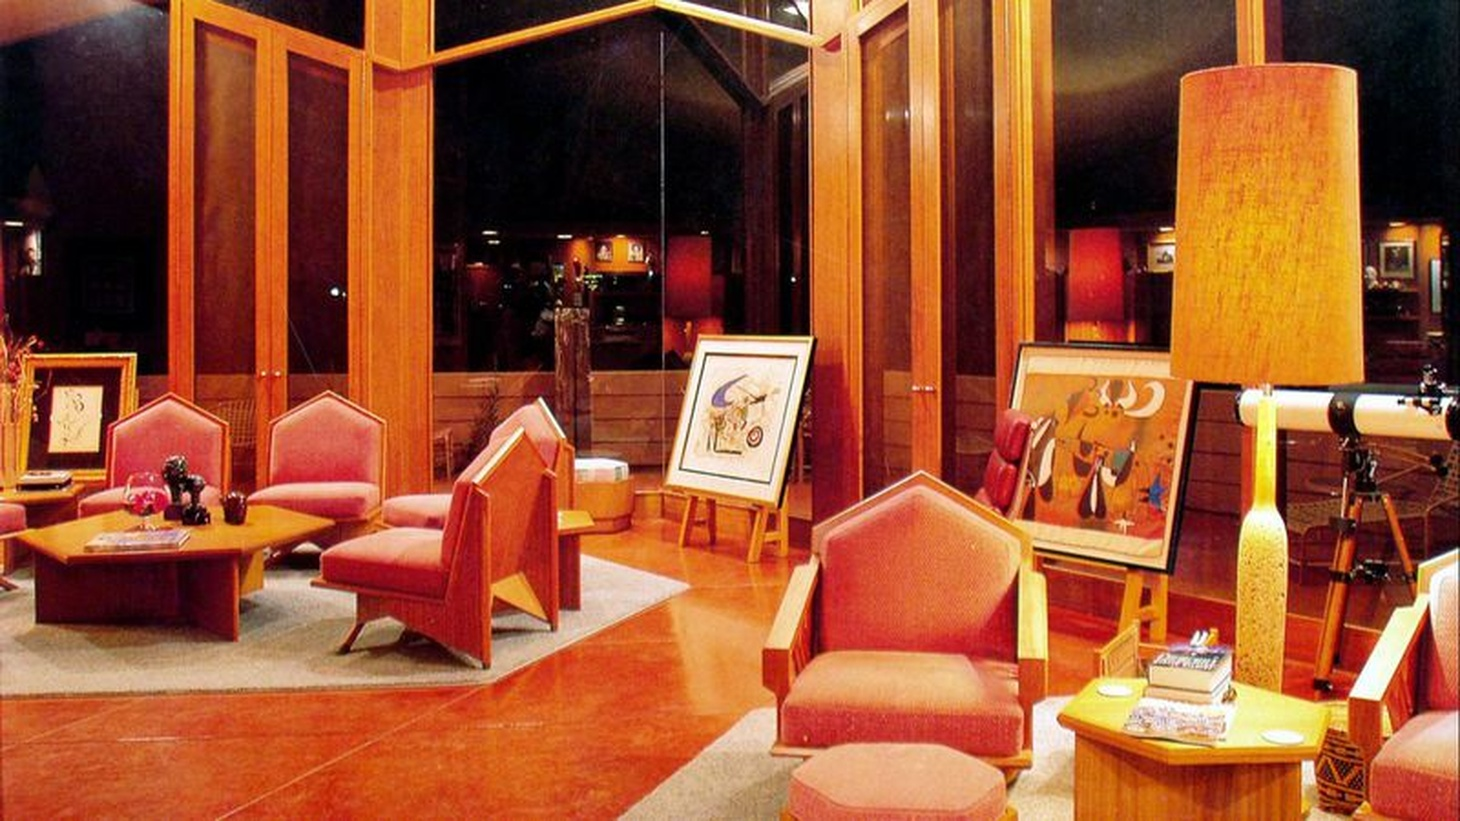 The George and Millie Ablin House in Bakersfield, shown here in 2004, is one of five Frank Lloyd Wright homes that will open to the public for a fundraising tour.